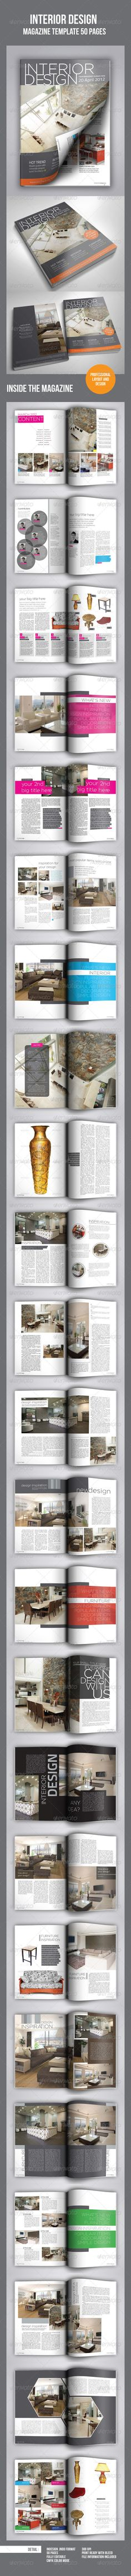 A4 50 Pages mgz (Vol. 2) — InDesign INDD #fashion #universal • Available here → https://graphicriver.net/item/a4-50-pages-mgz-vol-2/2860840?ref=pxcr